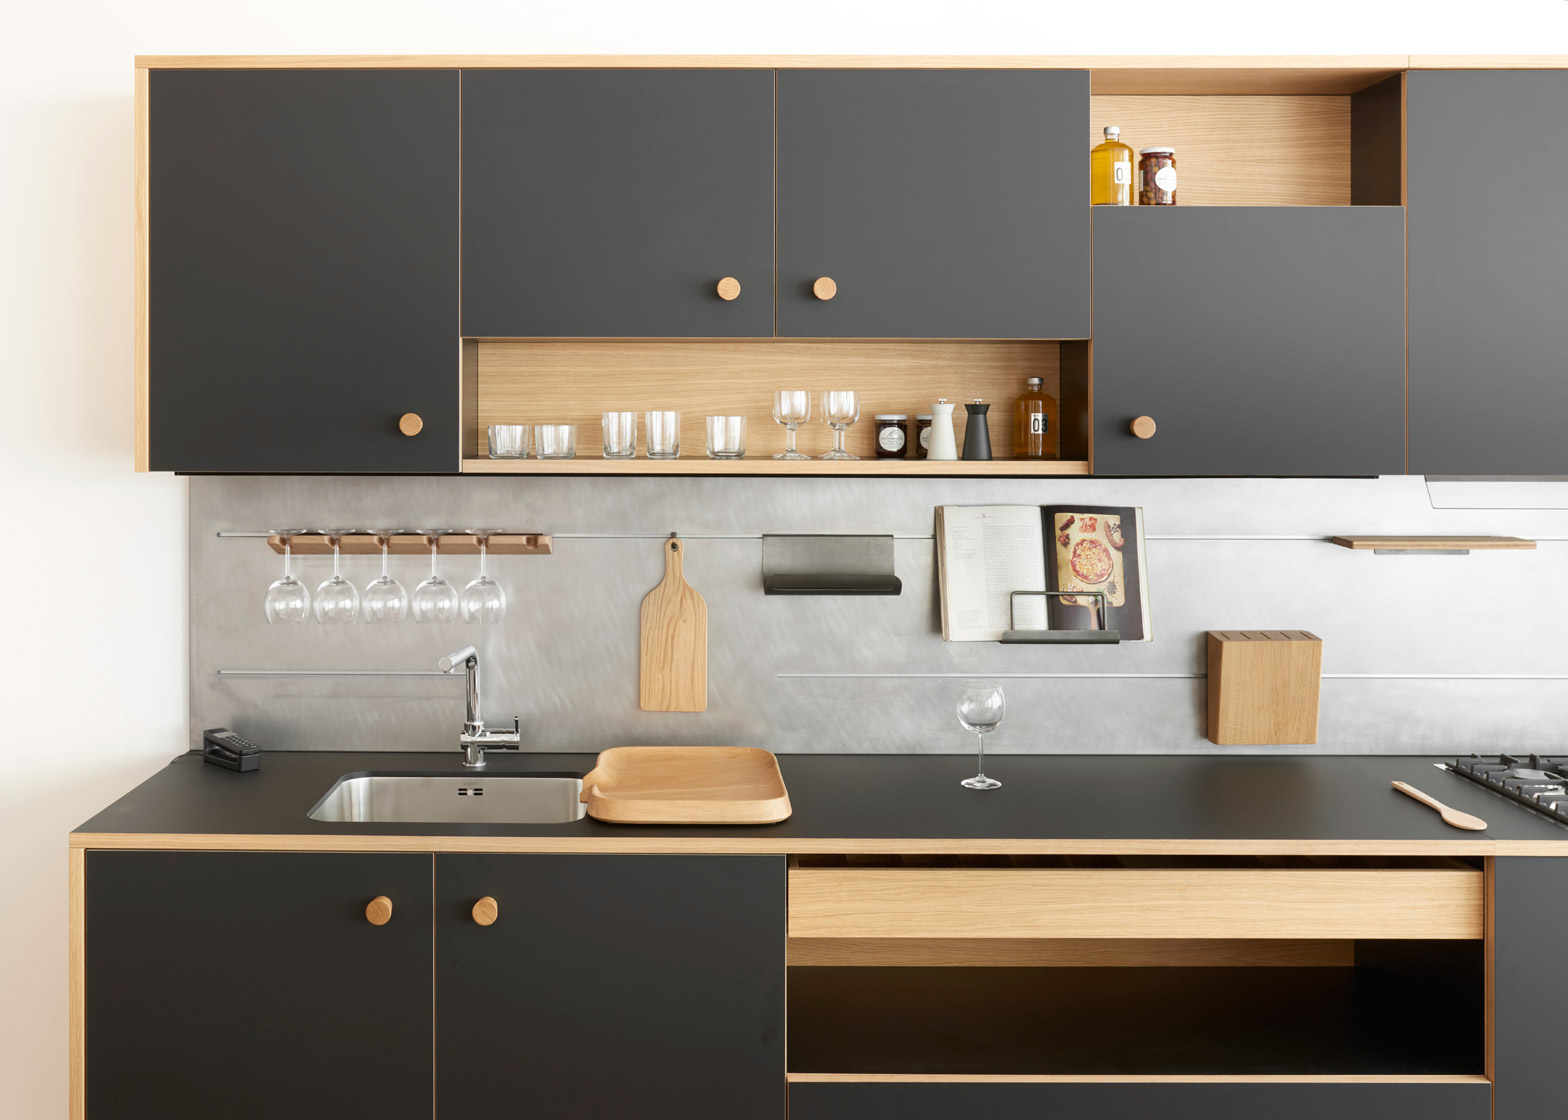 11 Of 13; Lepic Kitchen By Jasper Morrison